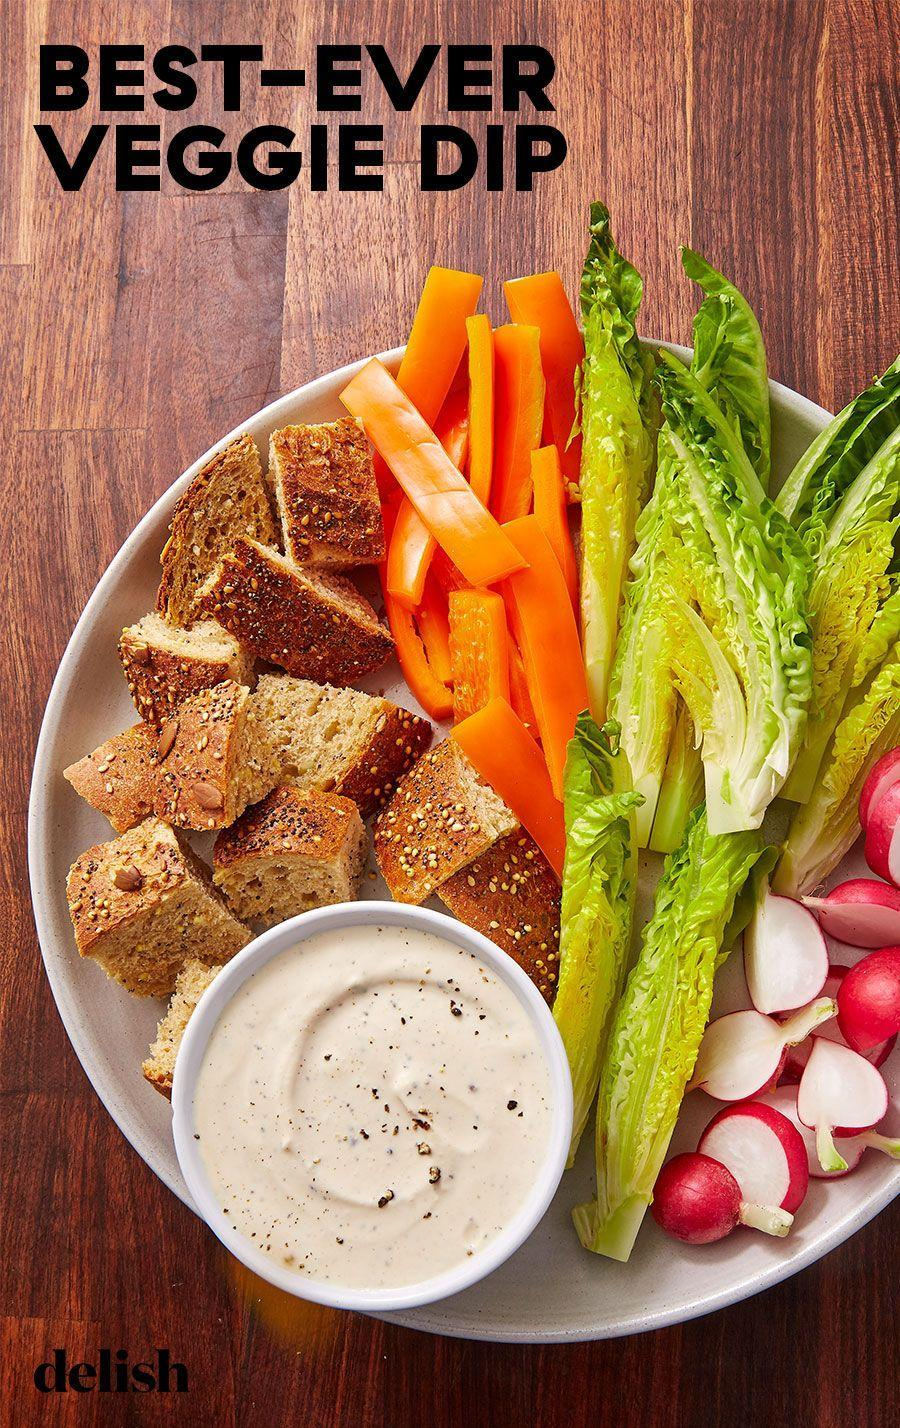 """<p>A simply delicious way to get your daily serving in.</p><p>Get the recipe from <a href=""""https://www.delish.com/cooking/recipe-ideas/a29540357/veggie-dip-recipe/"""" rel=""""nofollow noopener"""" target=""""_blank"""" data-ylk=""""slk:Delish"""" class=""""link rapid-noclick-resp"""">Delish</a>.</p>"""